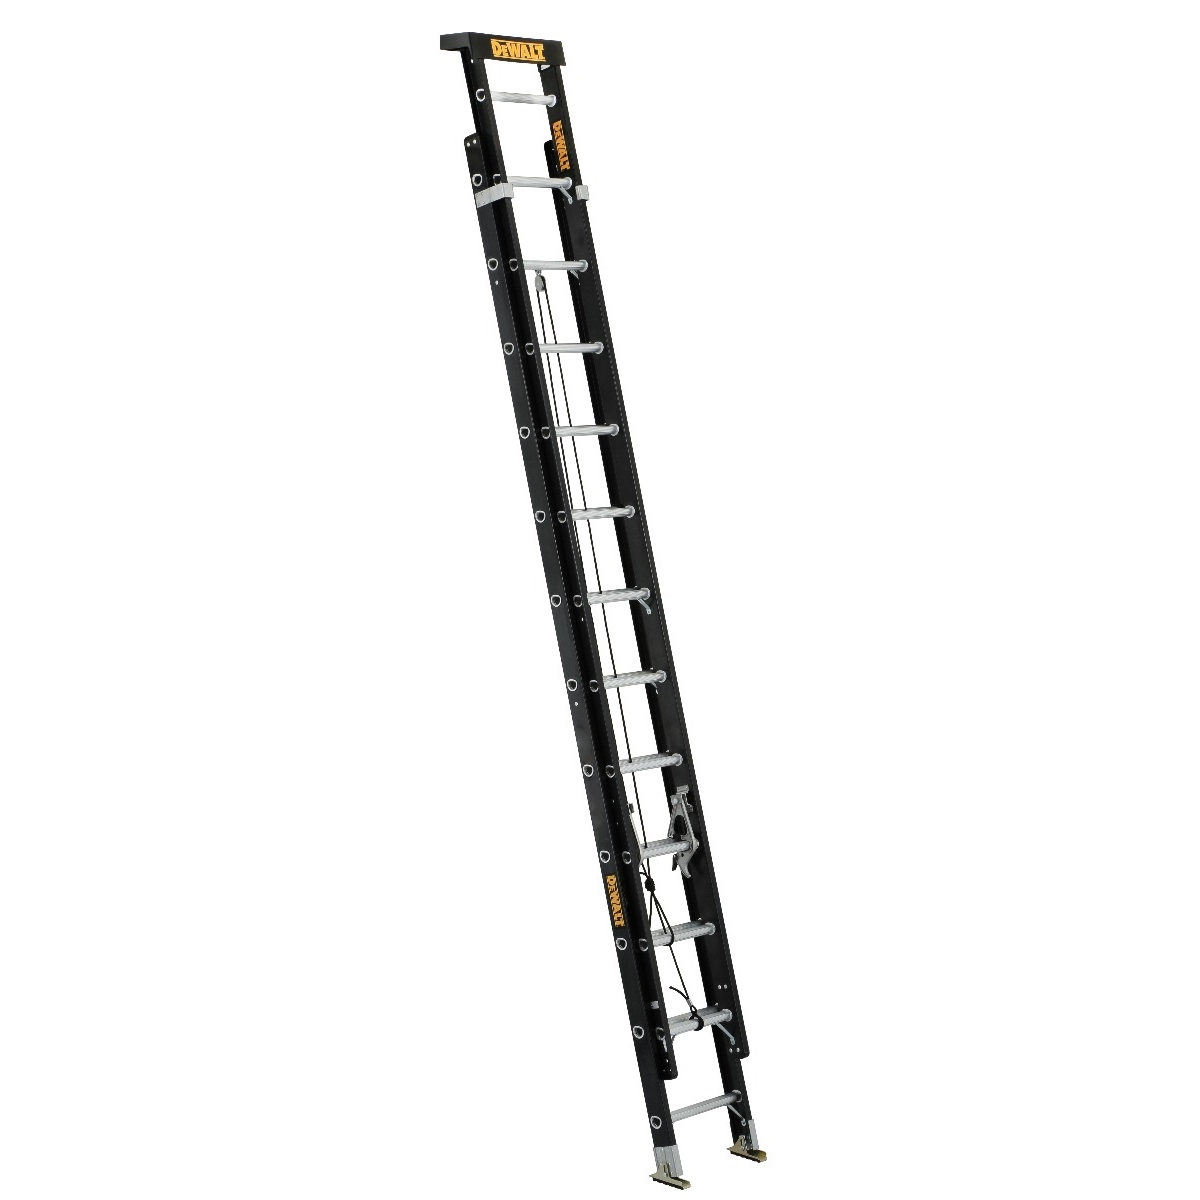 Picture of DeWALT DXL3020-24PT Extension Ladder, 282 in H Reach, 300 lb, 1-1/2 in D Step, Fiberglass